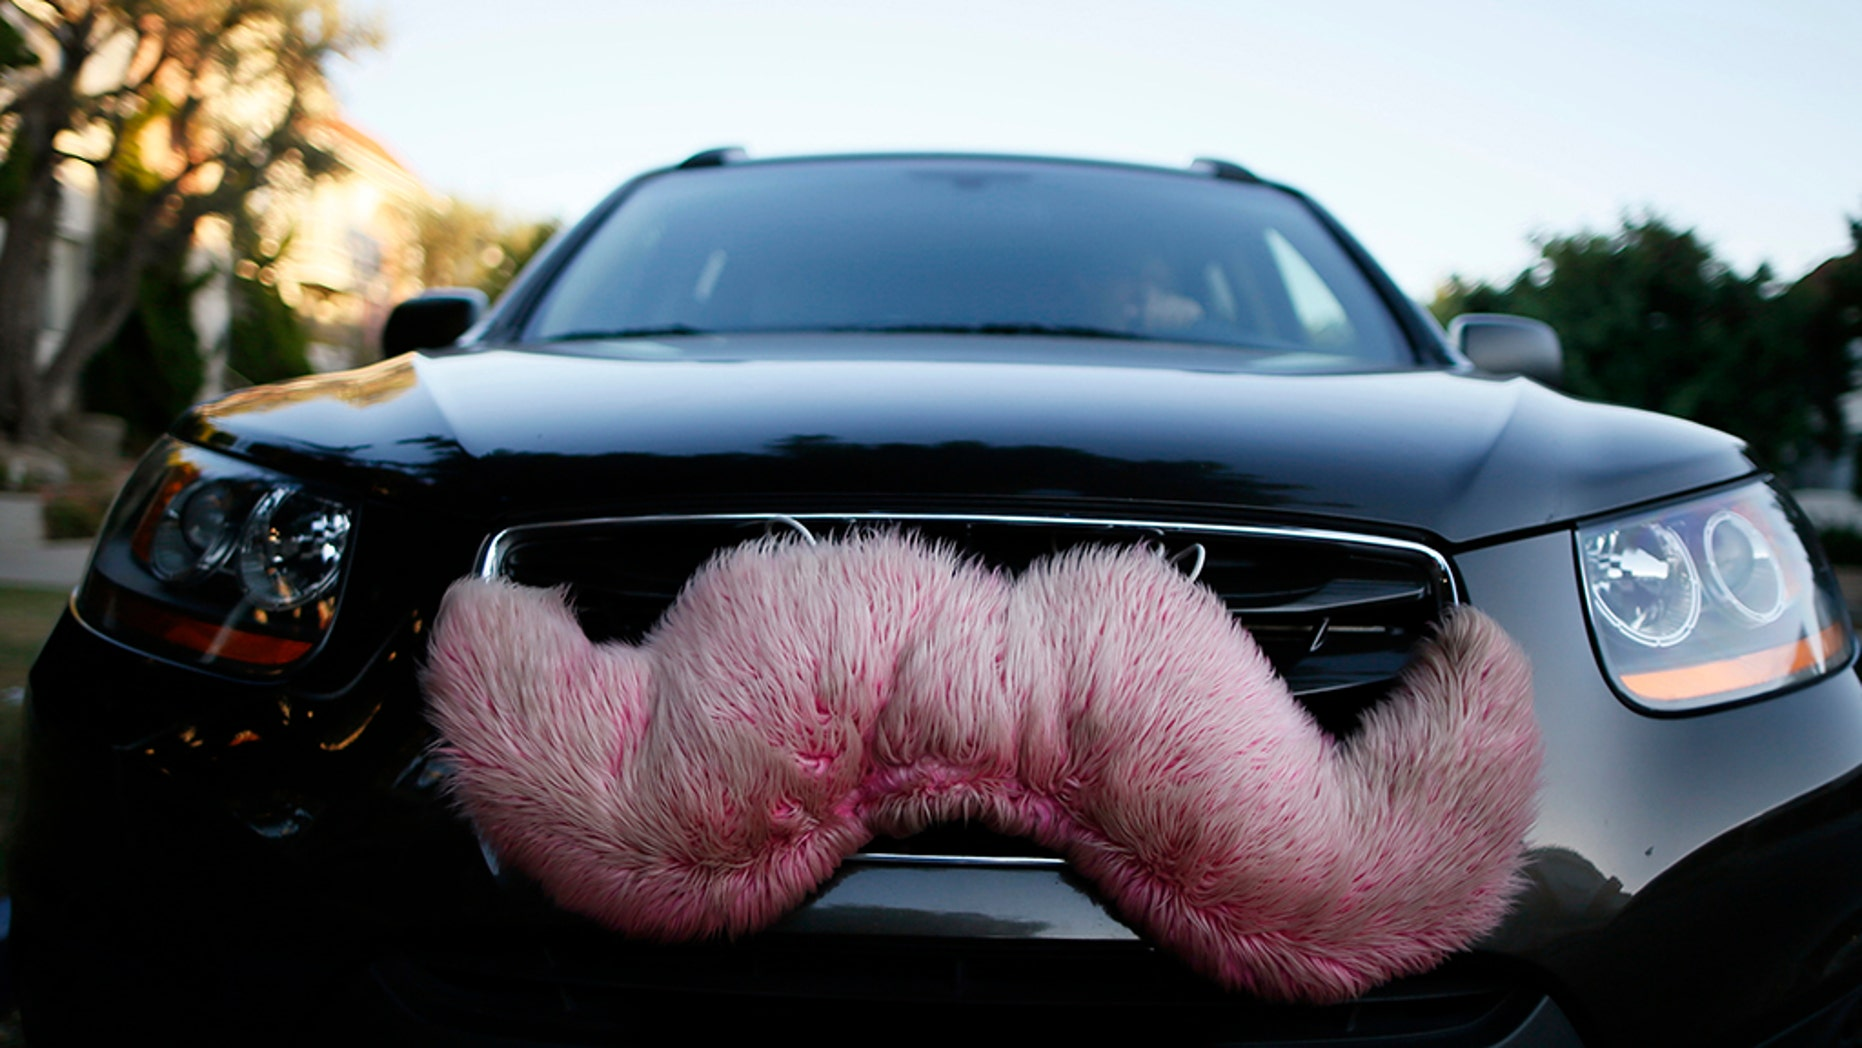 A Lyft driver reportedly kicked out a gay couple after they kissed in the backseat in Indianapolis, IN.